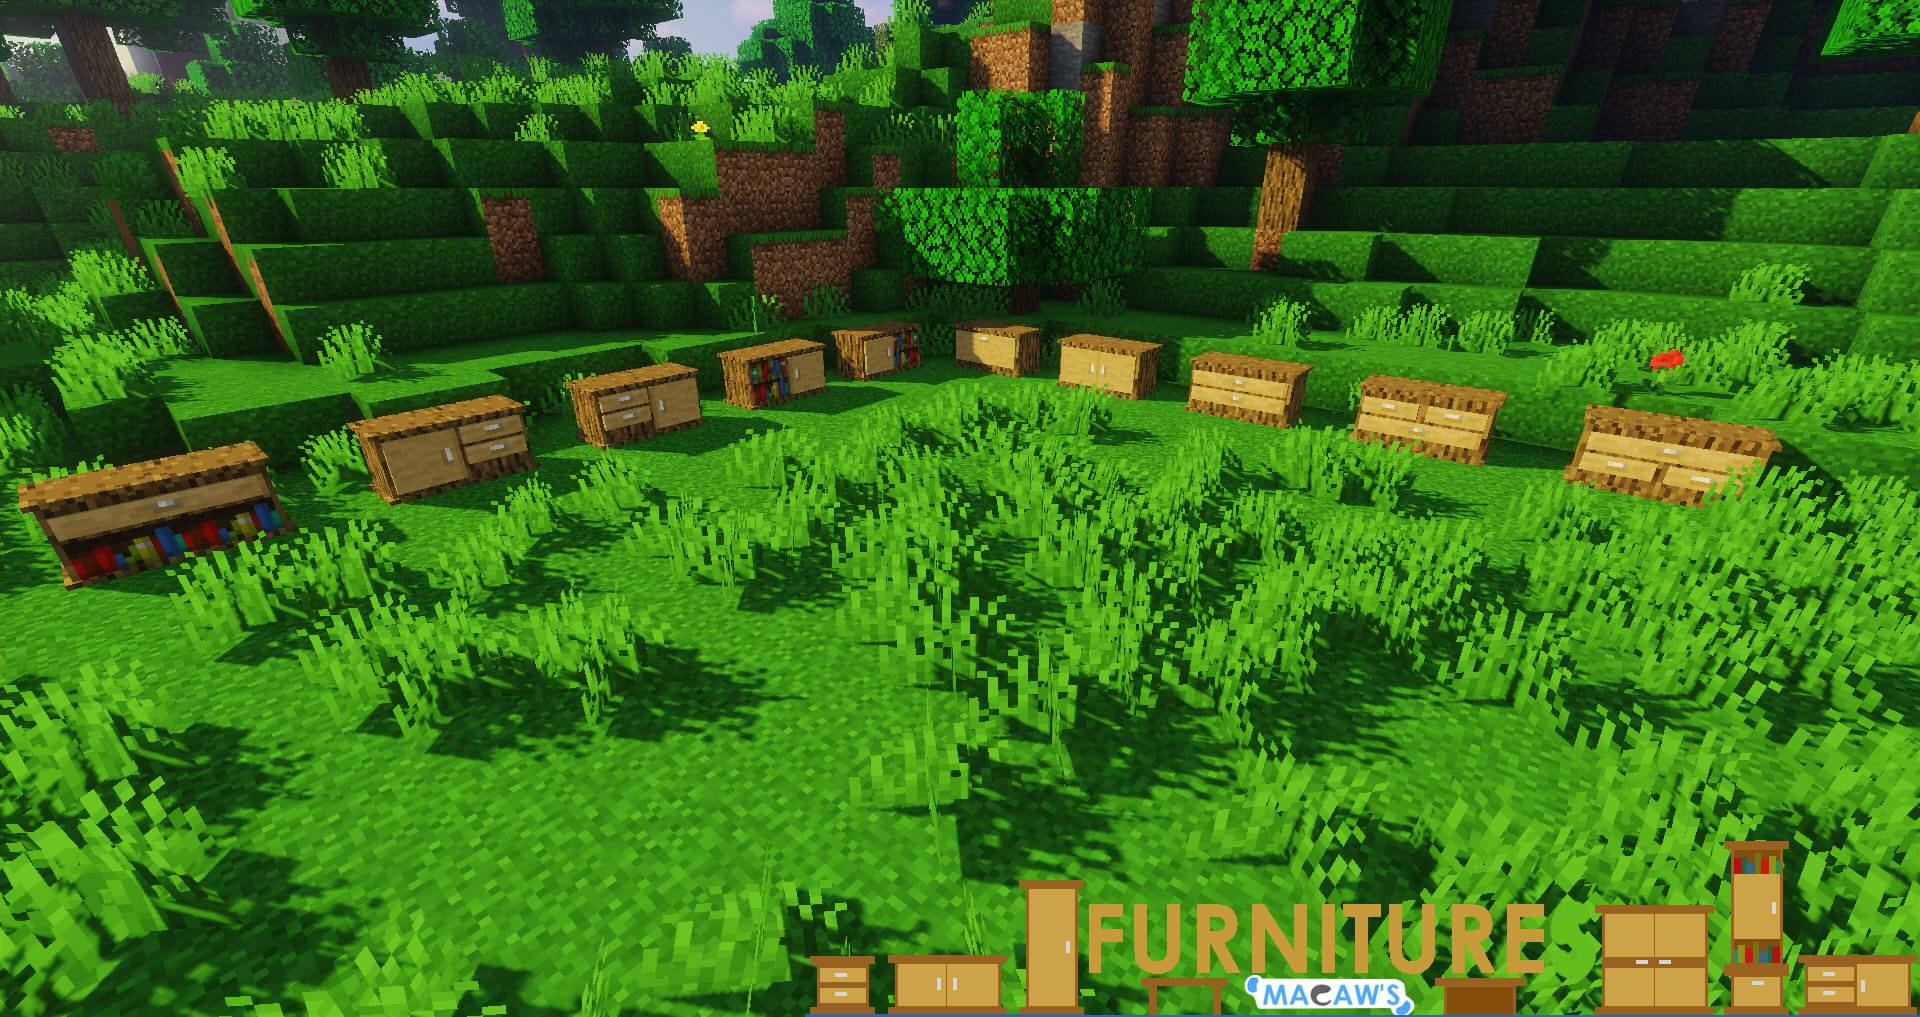 Macaw_s Furniture mod for minecraft 25